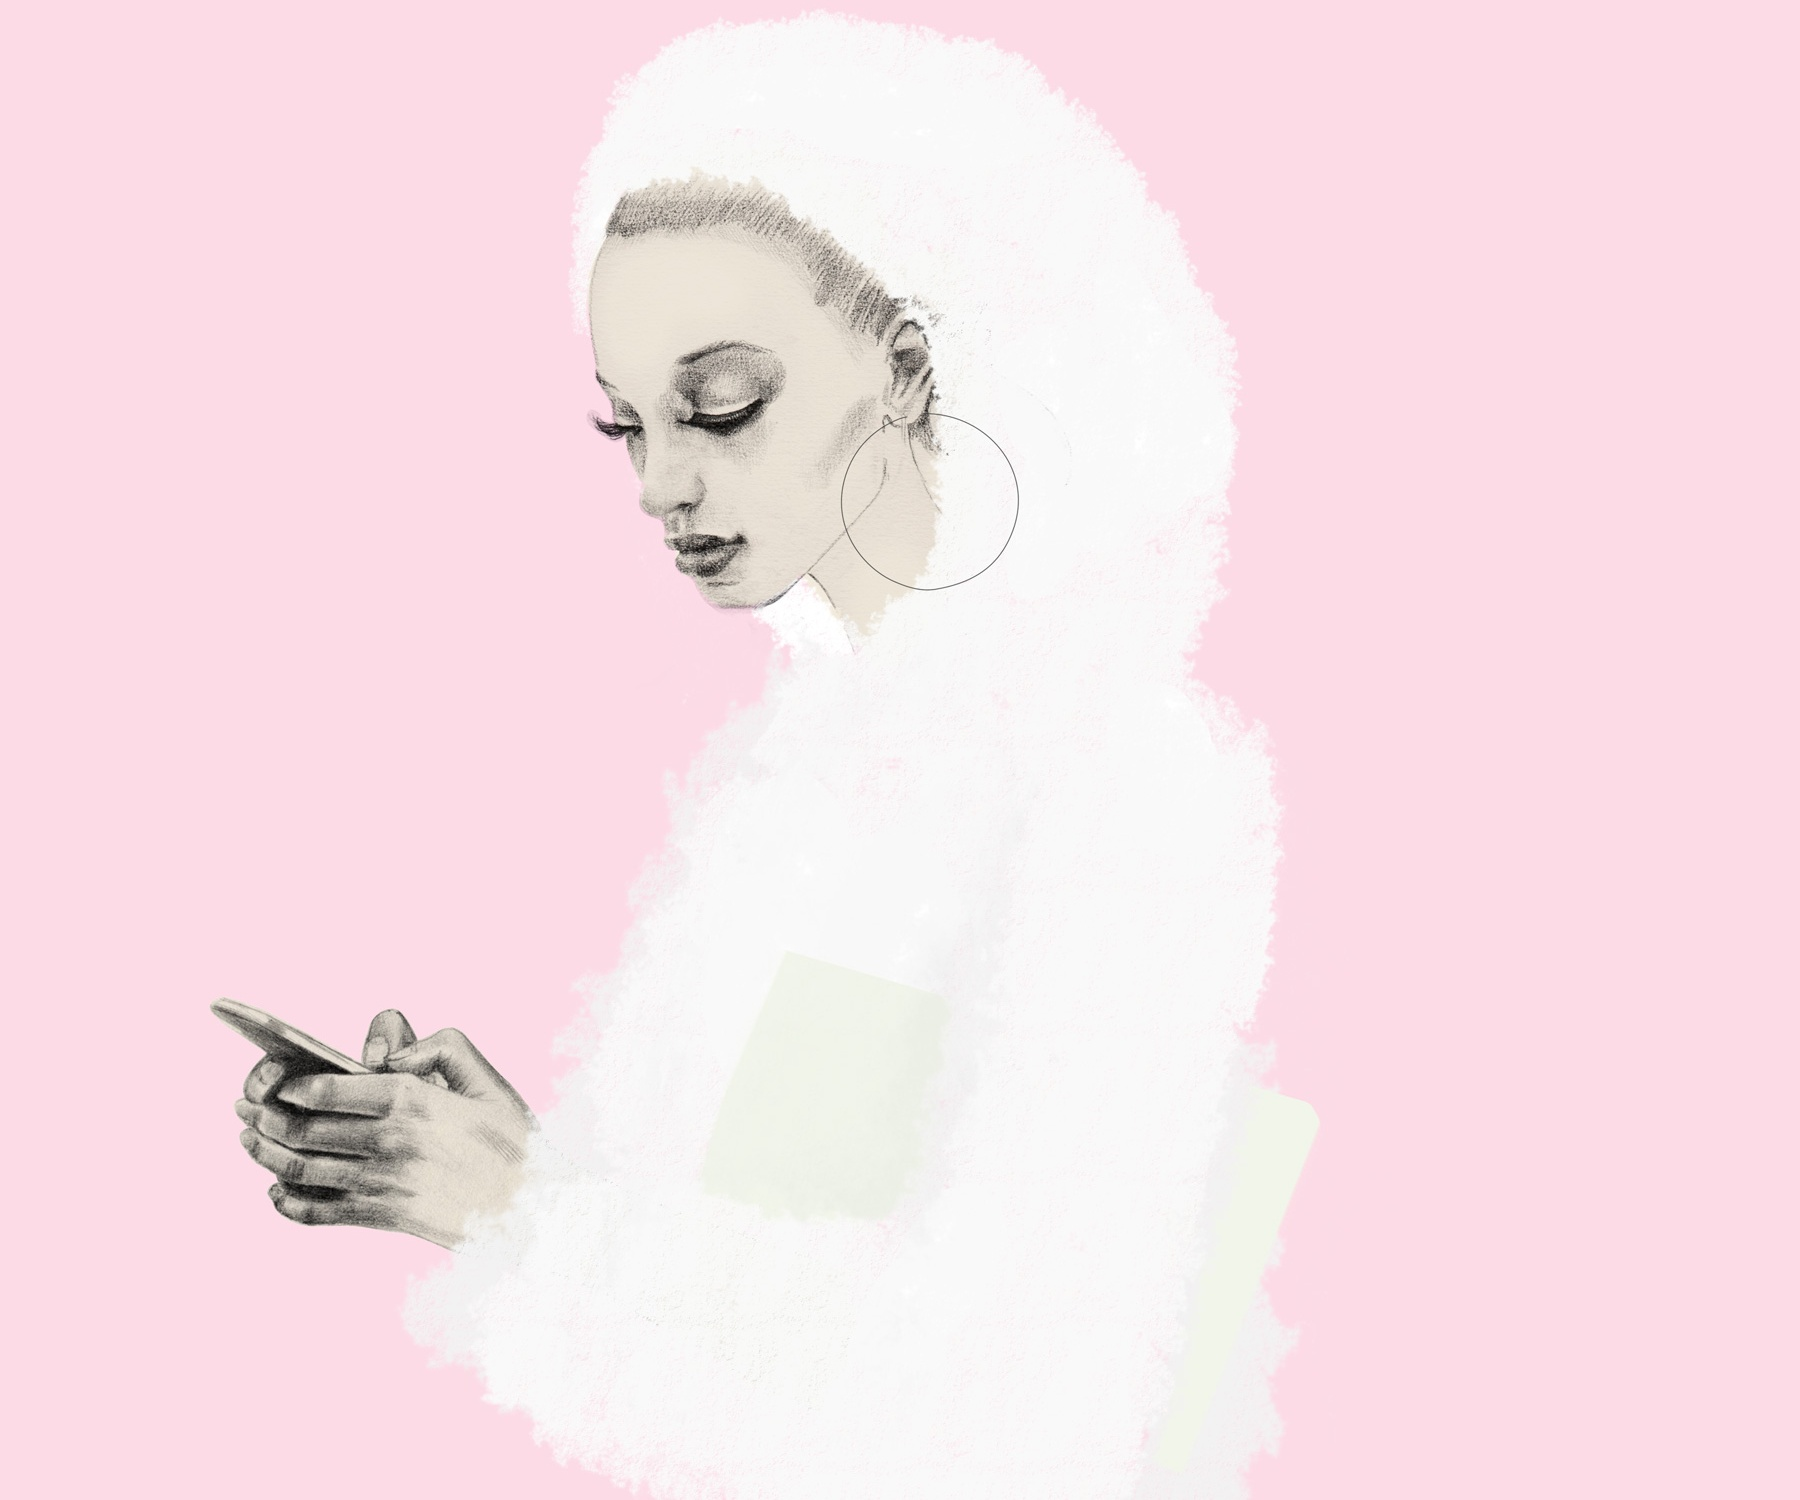 Girl looking to her smartphone